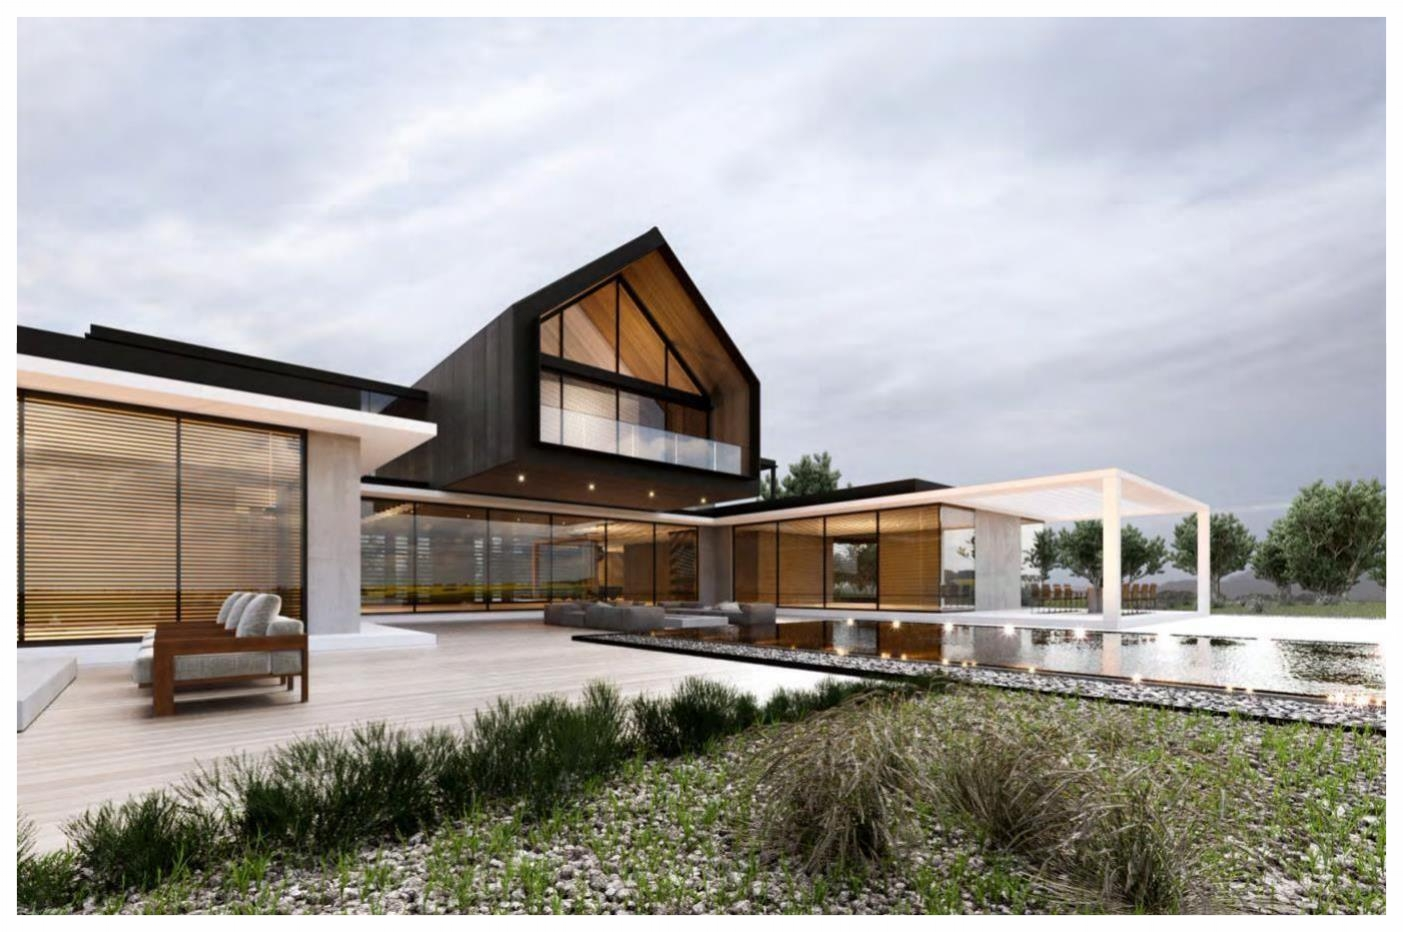 Front perspective / Rendering owned by noble design and architecture